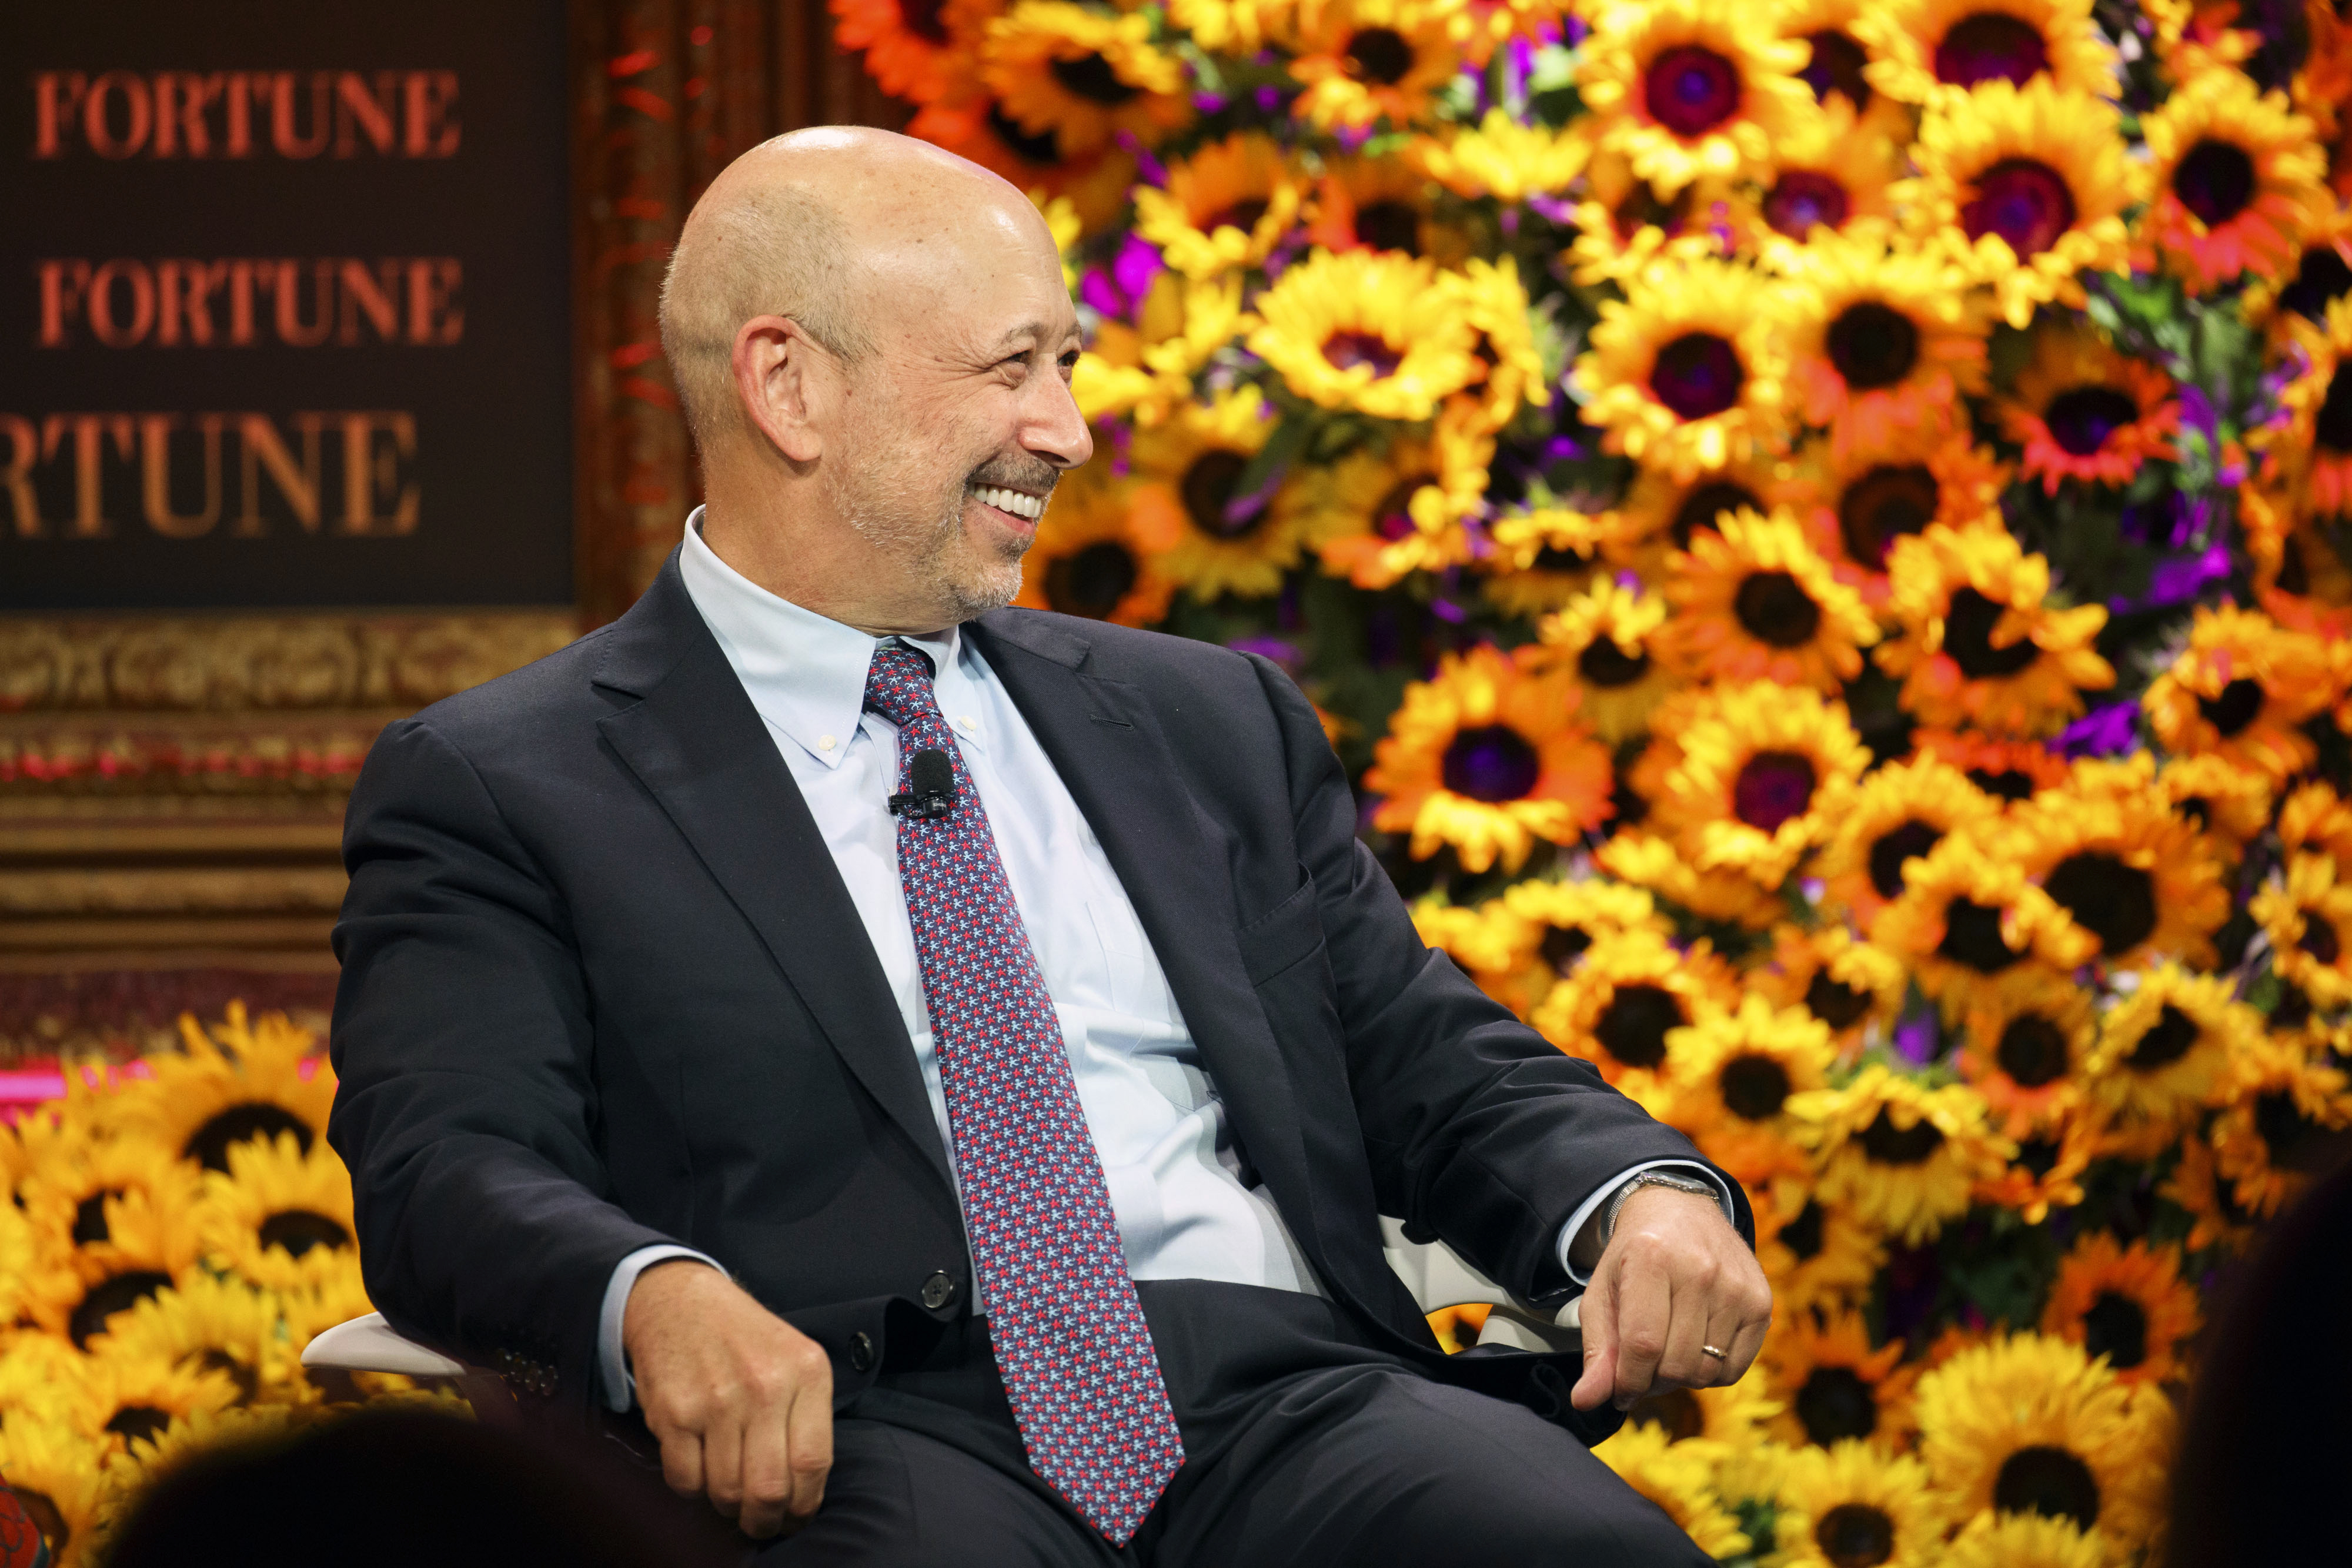 Lloyd Blankfein, chairman and chief executive officer of the Goldman Sachs, speaks during the Fortune Most Powerful Women Summit on Tuesday, Oct. 18, 2016.